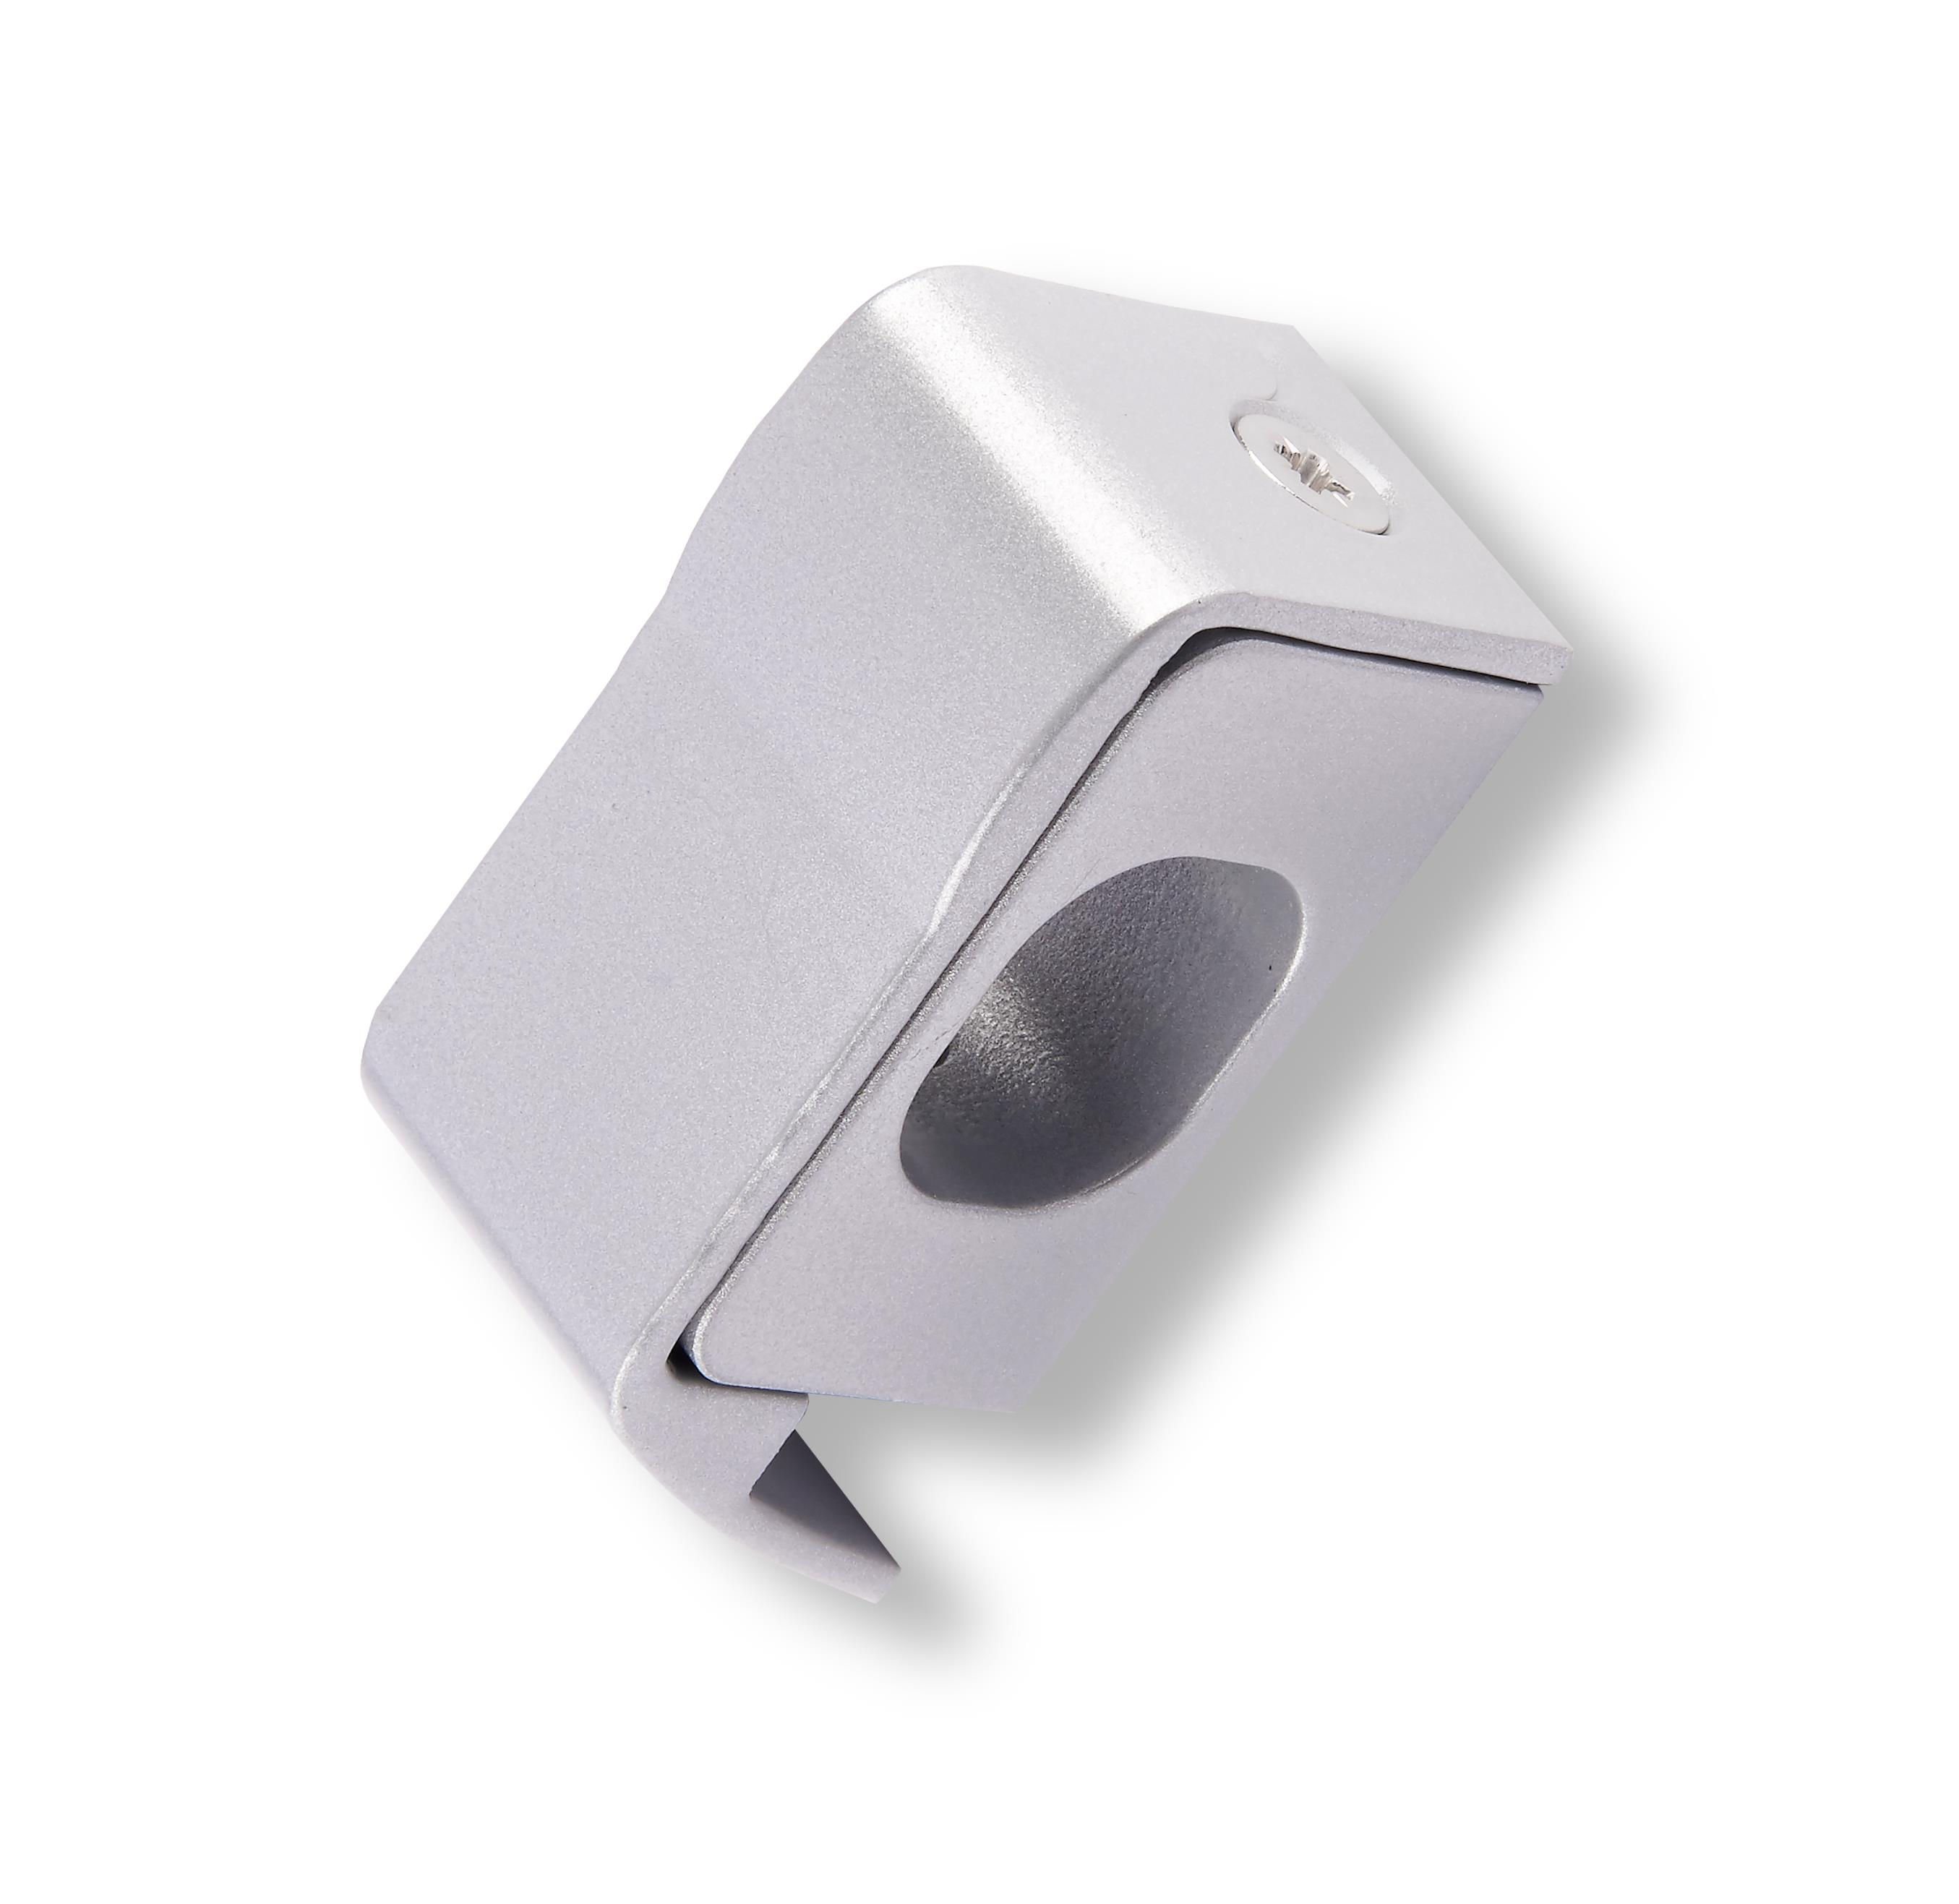 L9011-913 - Top Keep with Cover (Inward Opening)